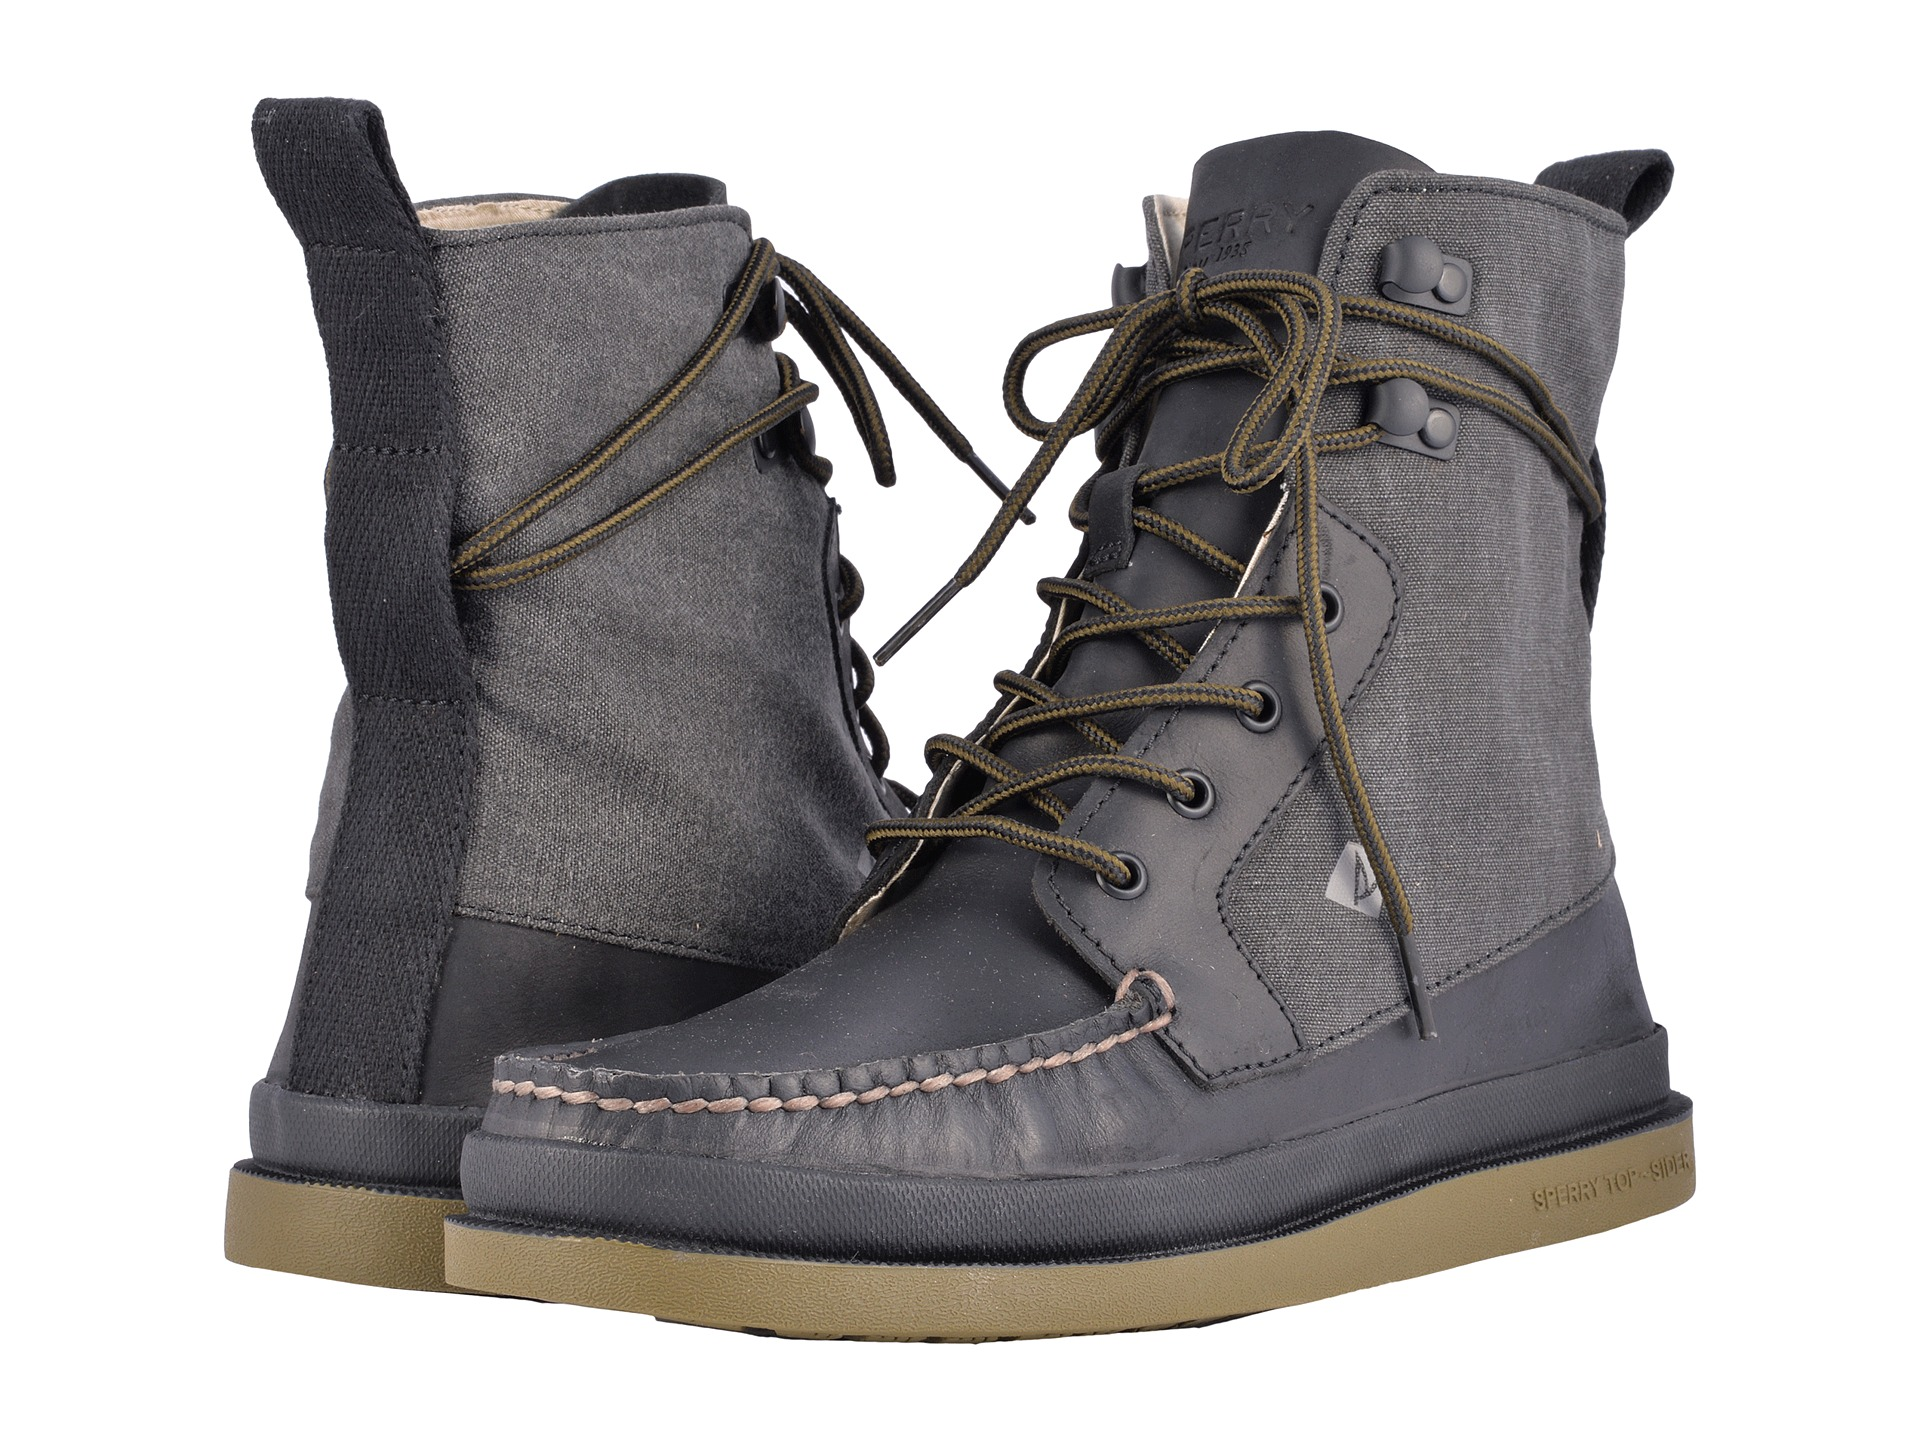 979ae927a4 60%OFF Sperry AO Surplus Boot at - kaneusa.org